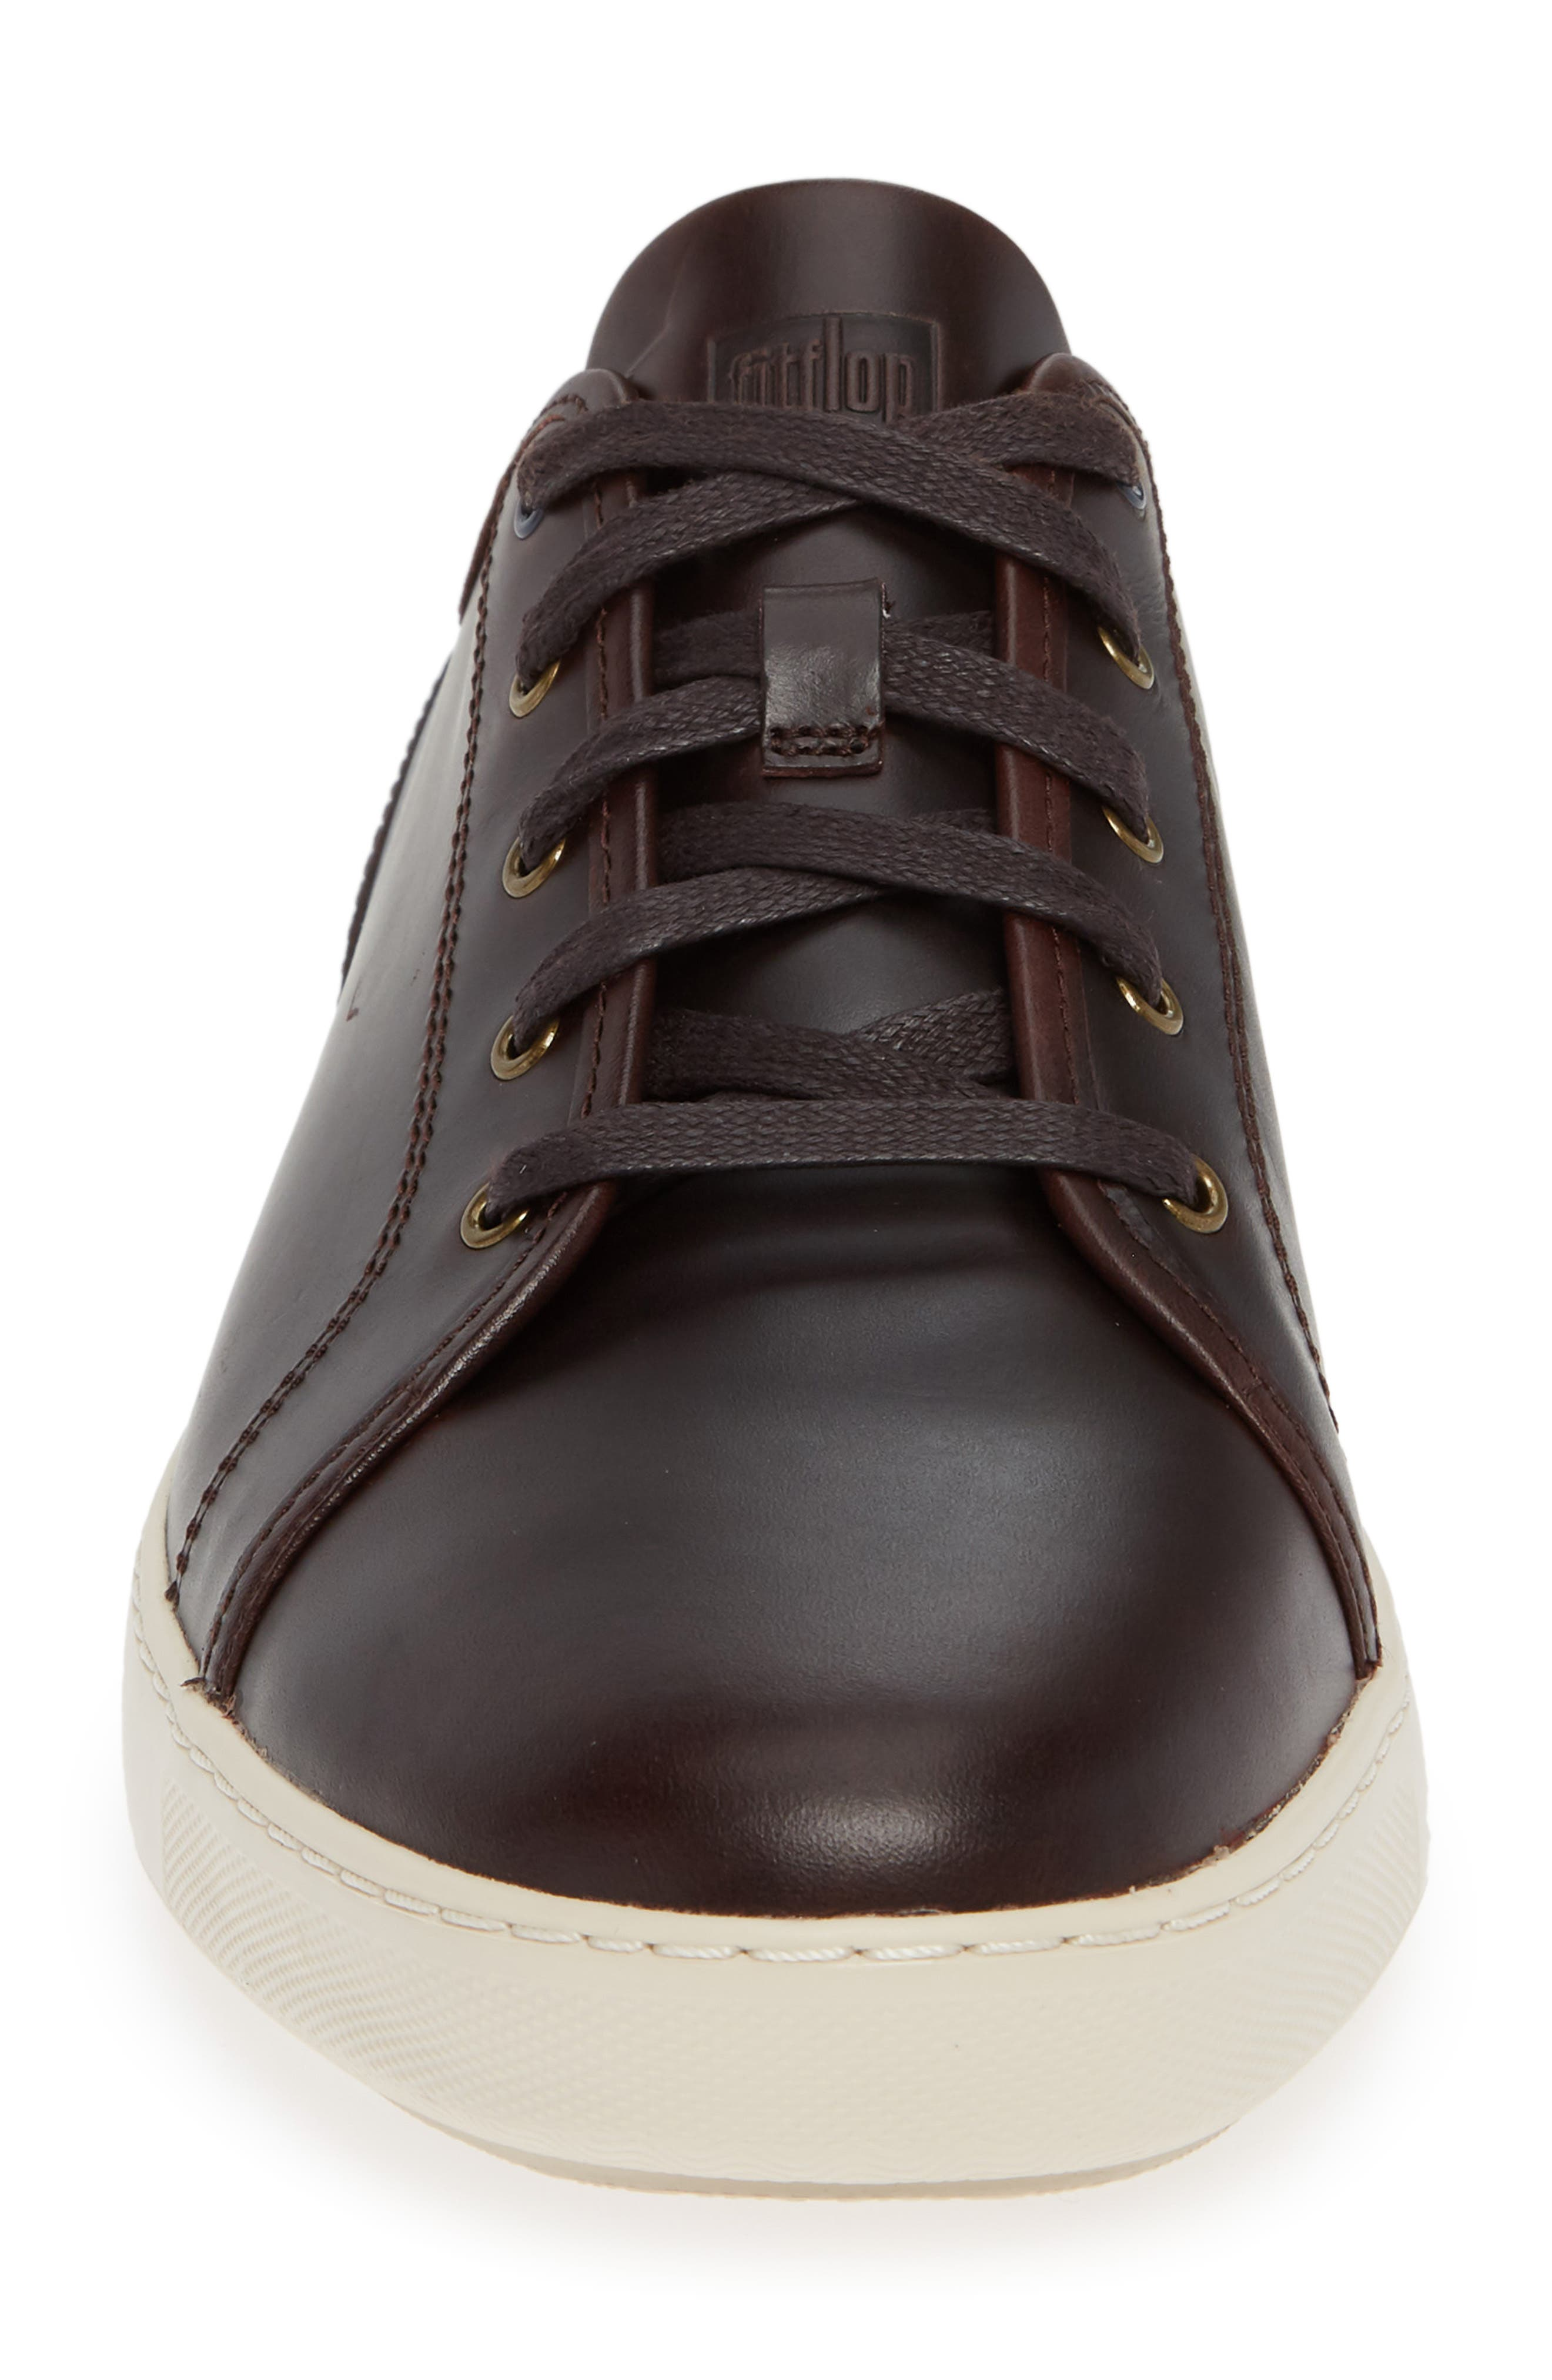 Christophe Low Top Sneaker,                             Alternate thumbnail 5, color,                             Dark Oxblood